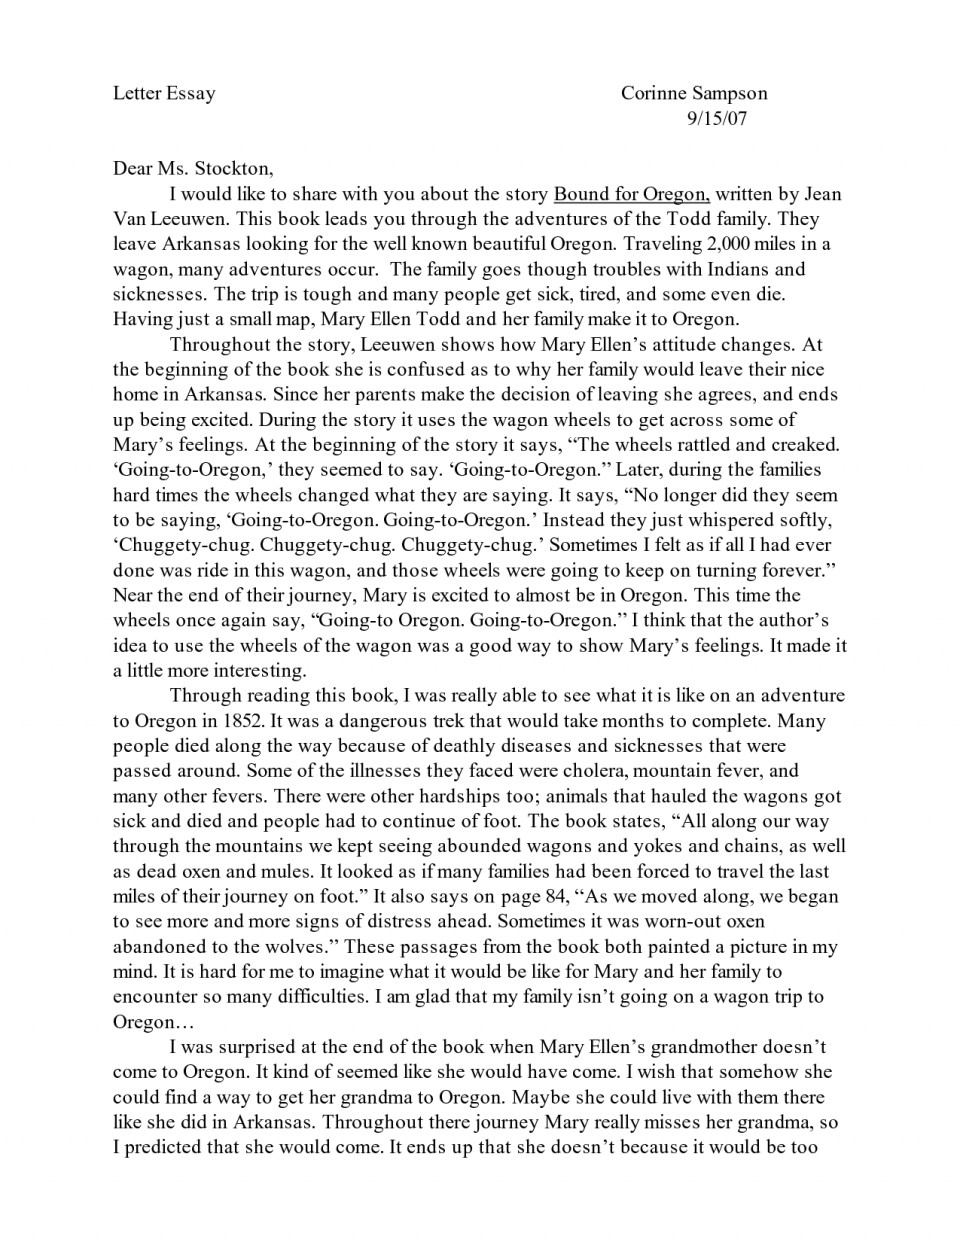 006 What To Write For Scholarship Essay Bunch Ideas Of Sample Essays Pdf Your Awesome A How Introduction That Stands Out About Career Goals 960